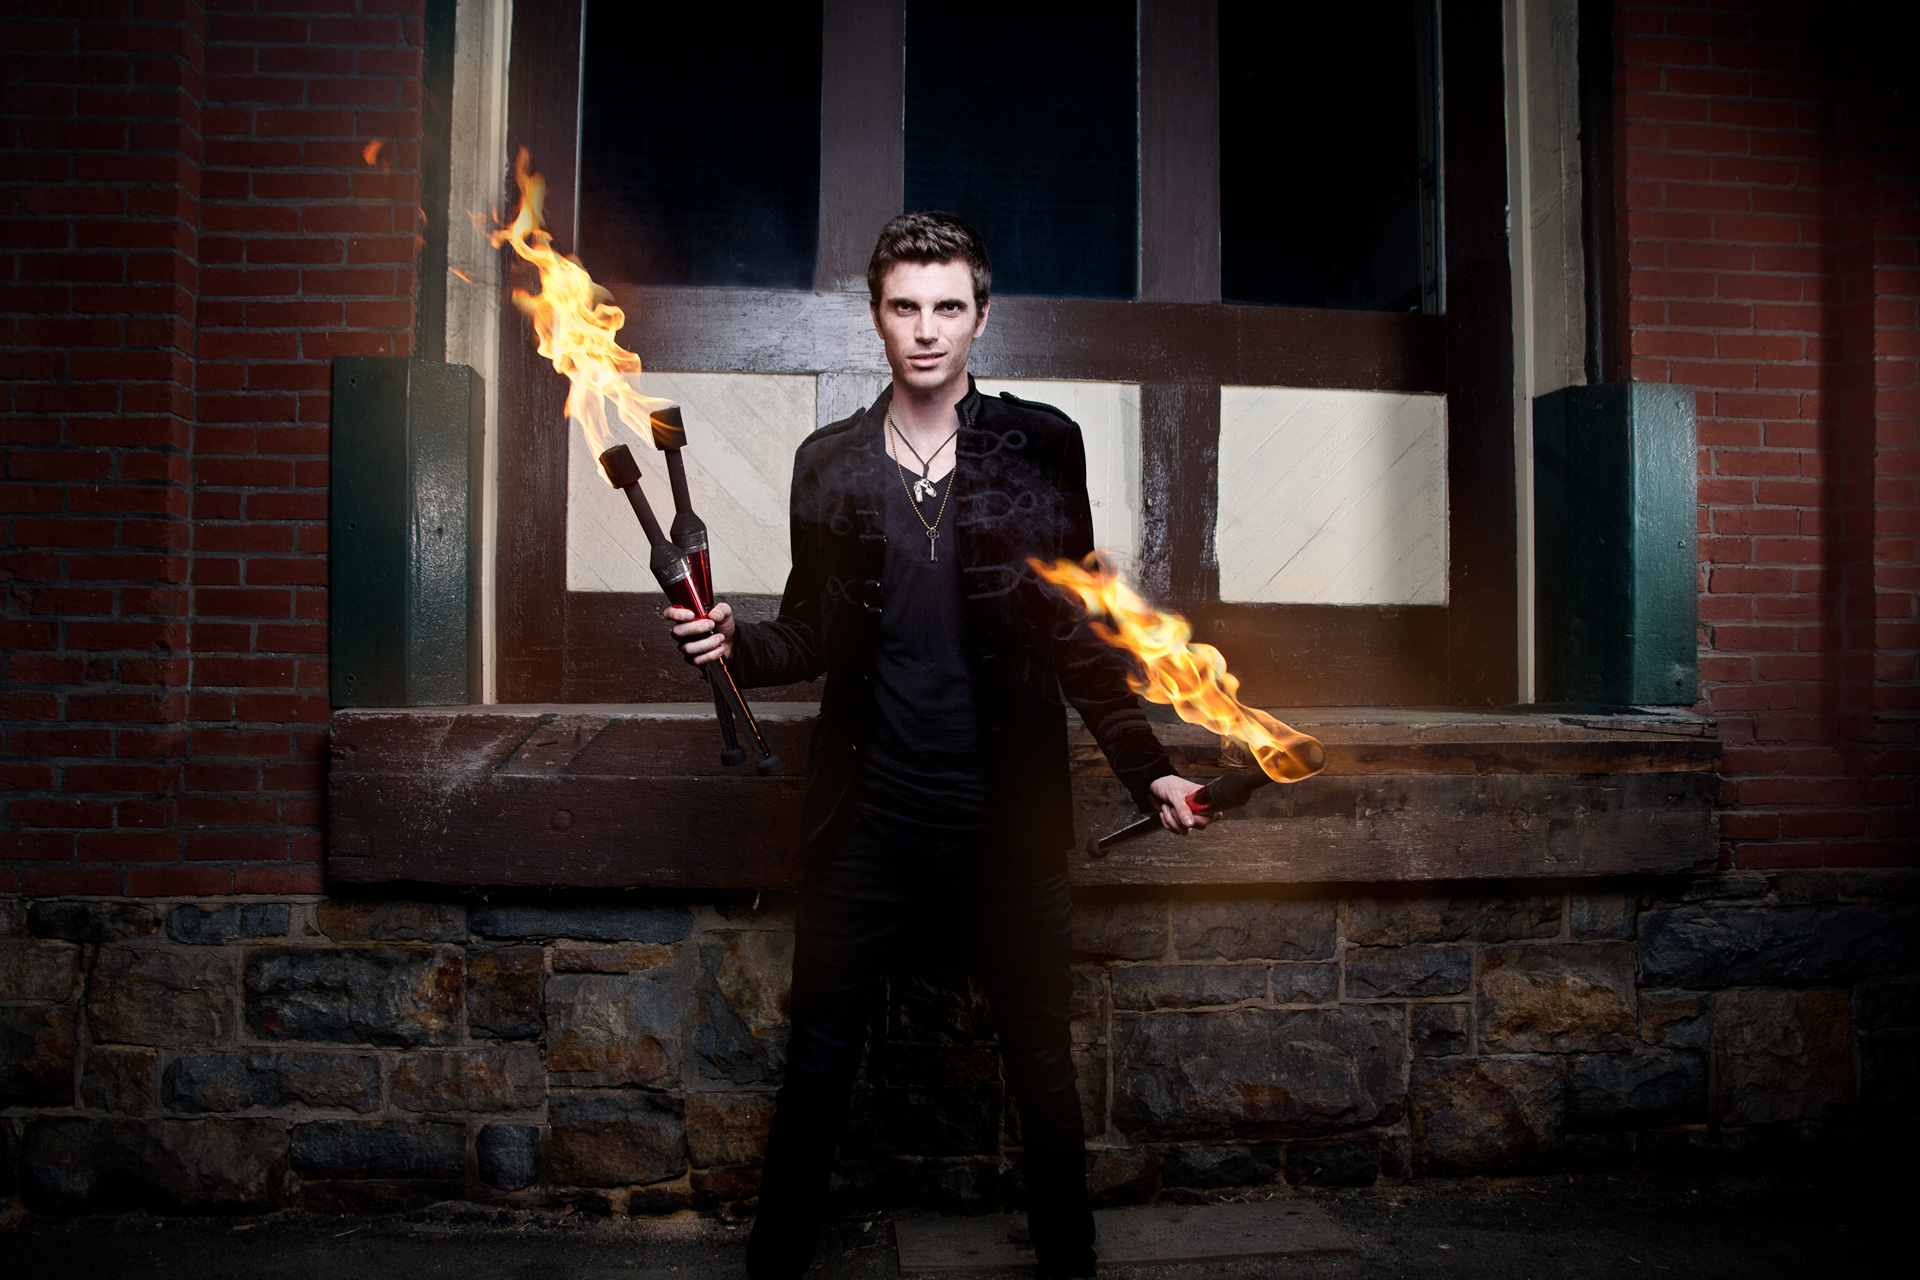 Chris Ruggiero Fire promo photo